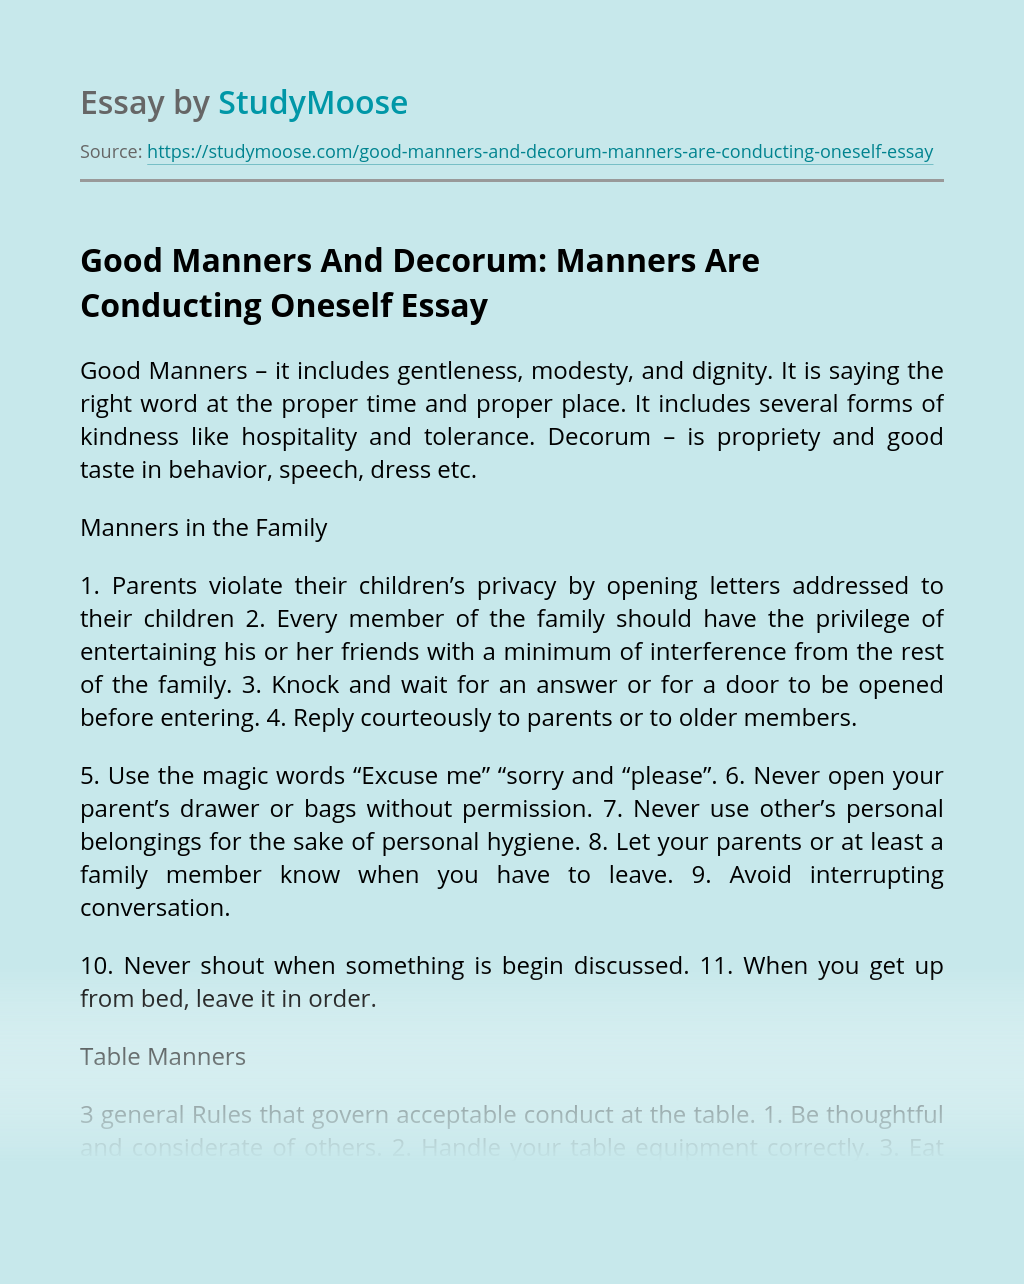 Good Manners And Decorum: Manners Are Conducting Oneself